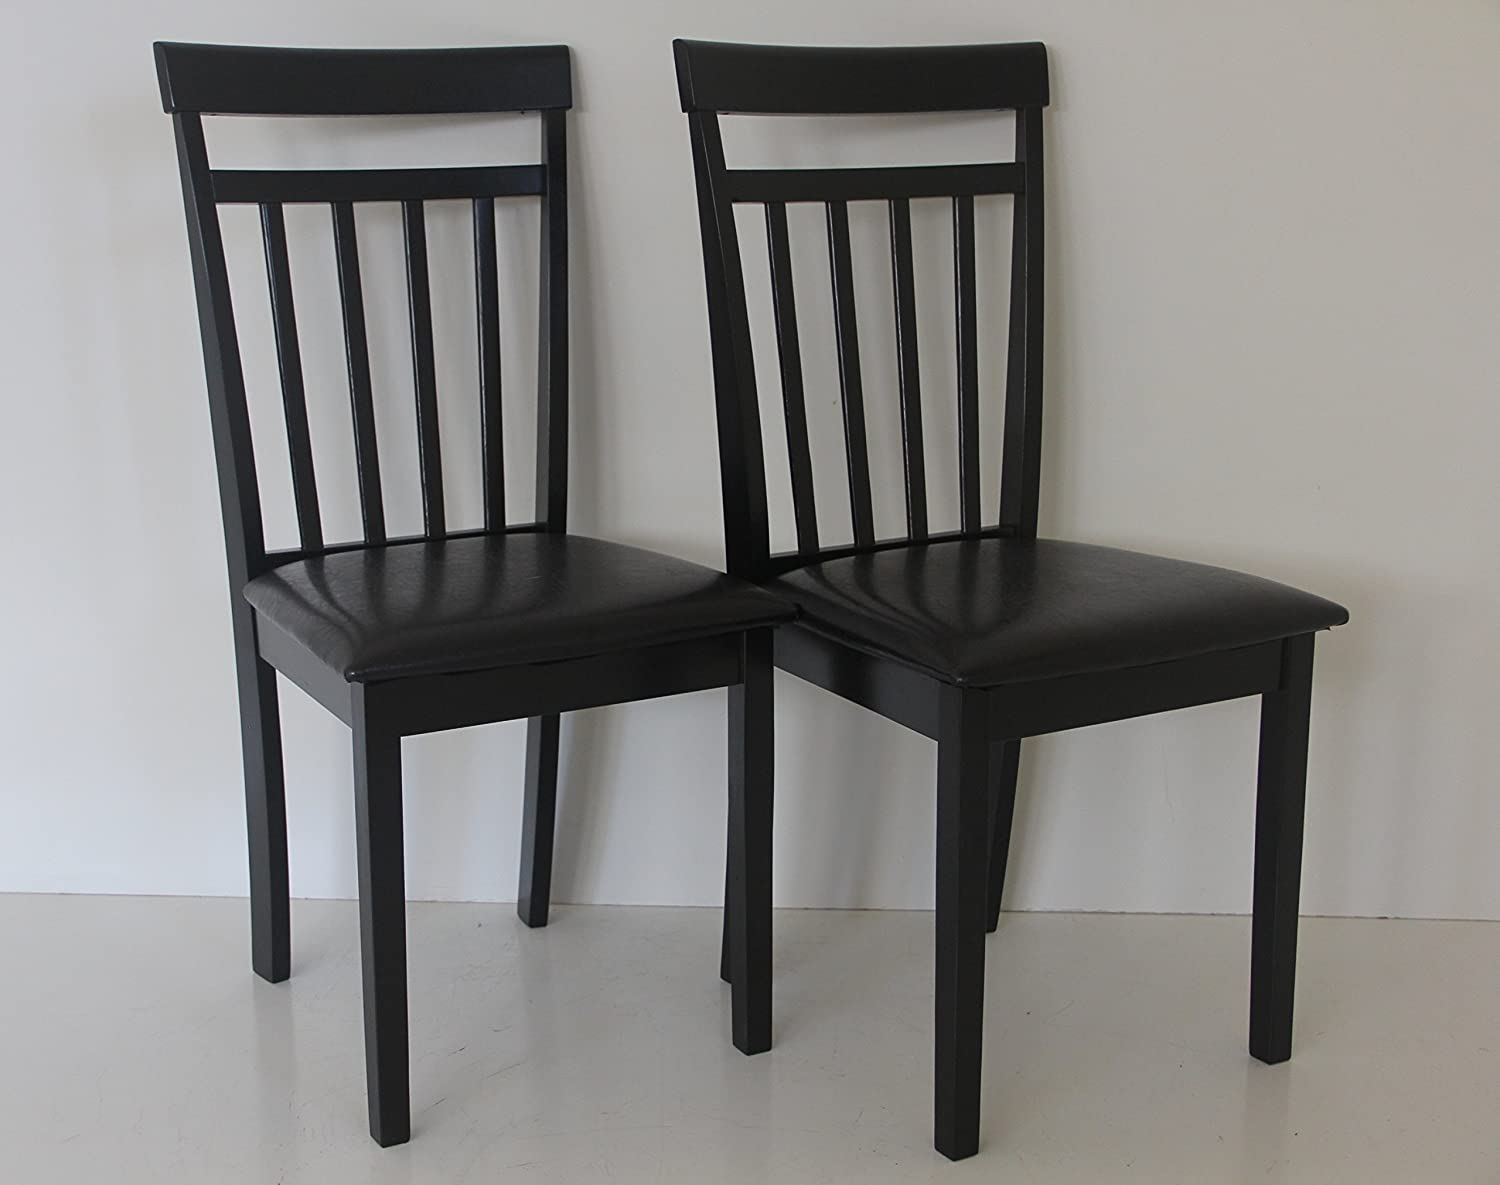 Set of 2 Warm Dining Room Kitchen Solid Wood Hardwood Chairs in Espresso Black Finish set of 2 warm dining room kitchen solid wood hardwood chairs in espresso black finish